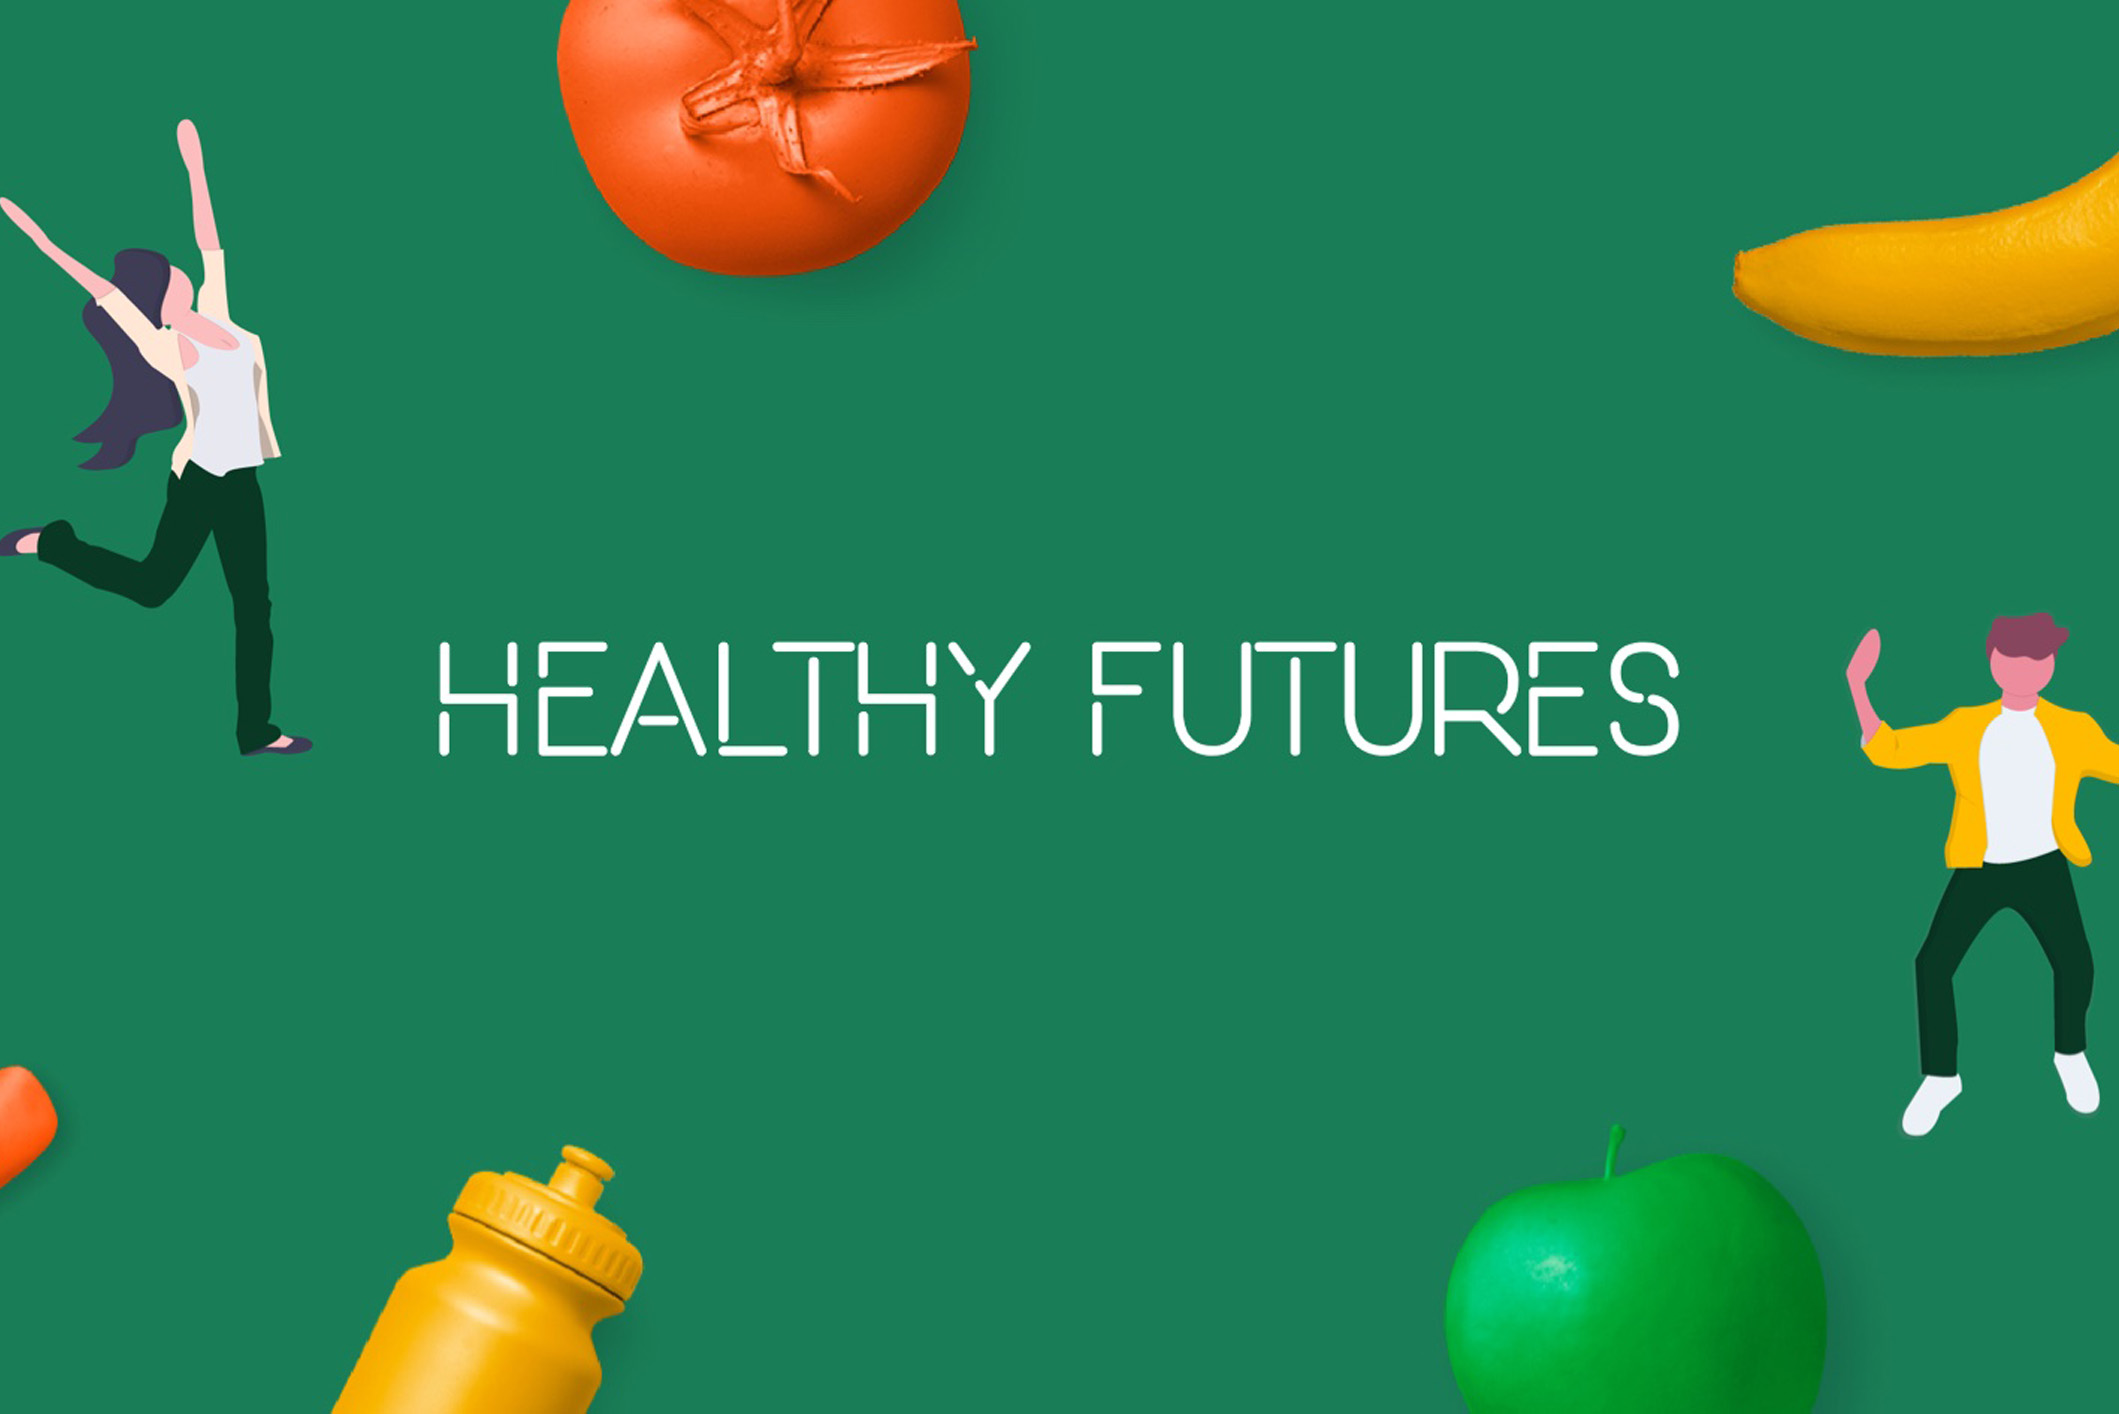 Press Release: IamYiam Selected For LEAP's Healthy Futures Accelerator